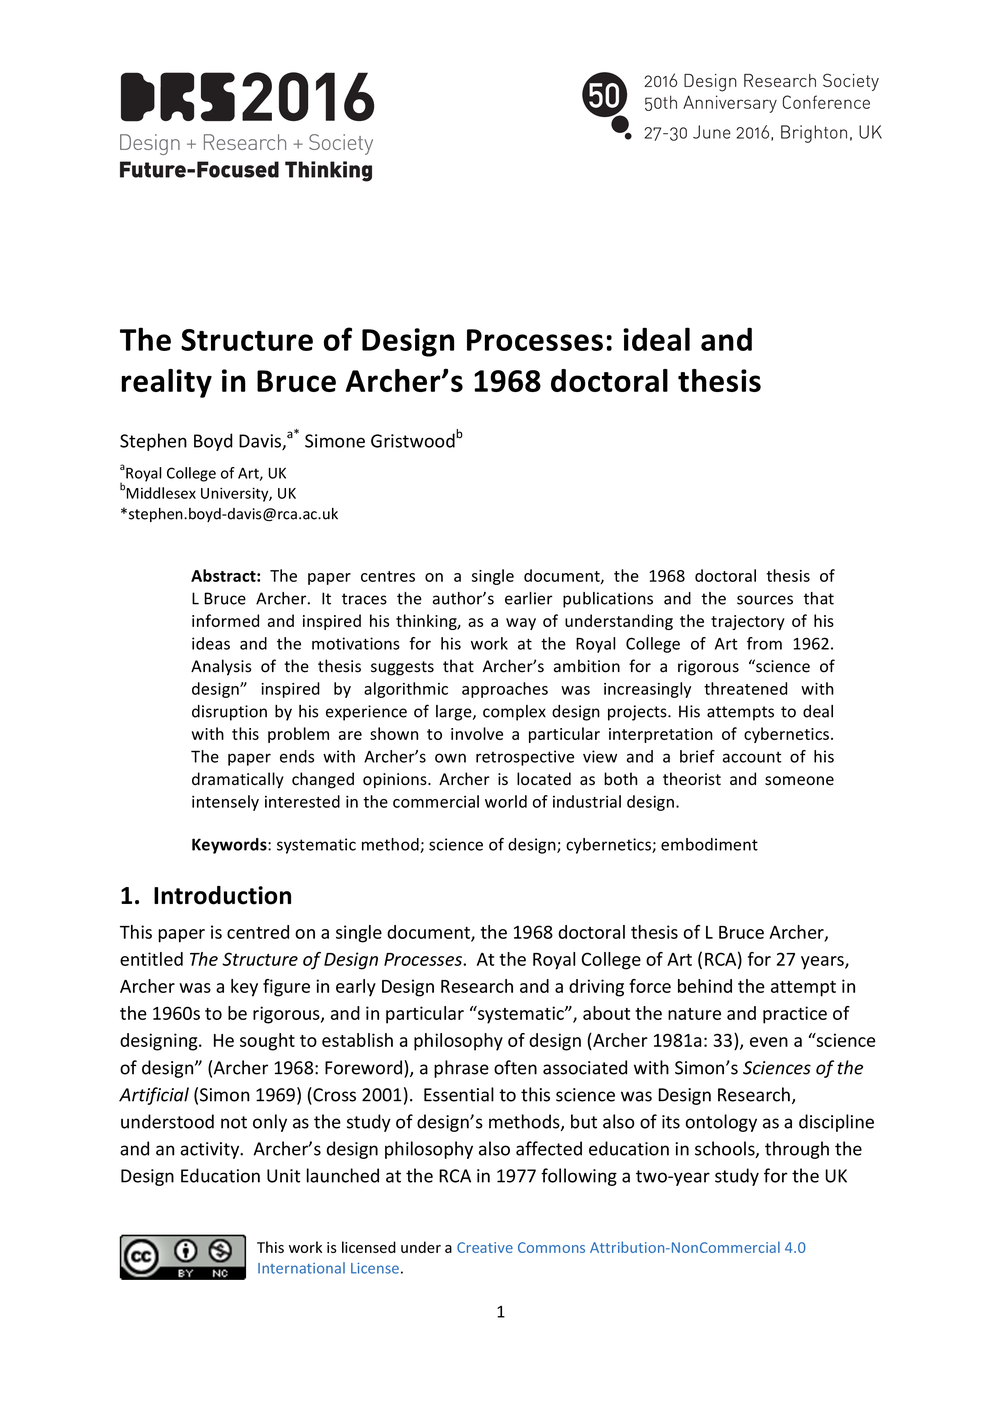 The Structure of Design Processes: Bruce Archer\'s 1968 doctoral ...